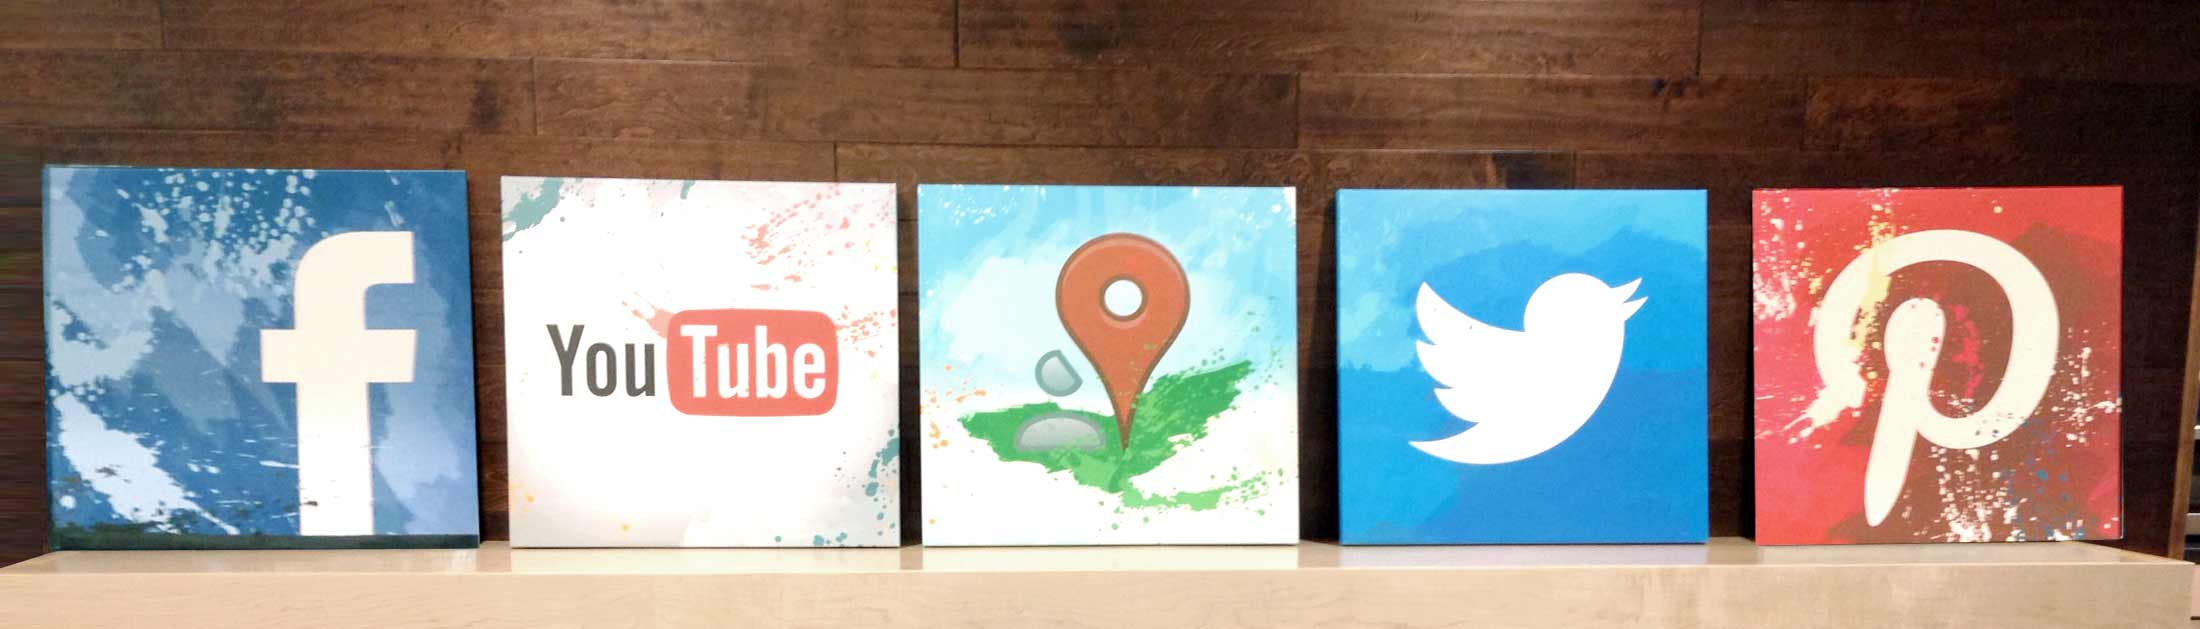 social media paintings from Blue Compass